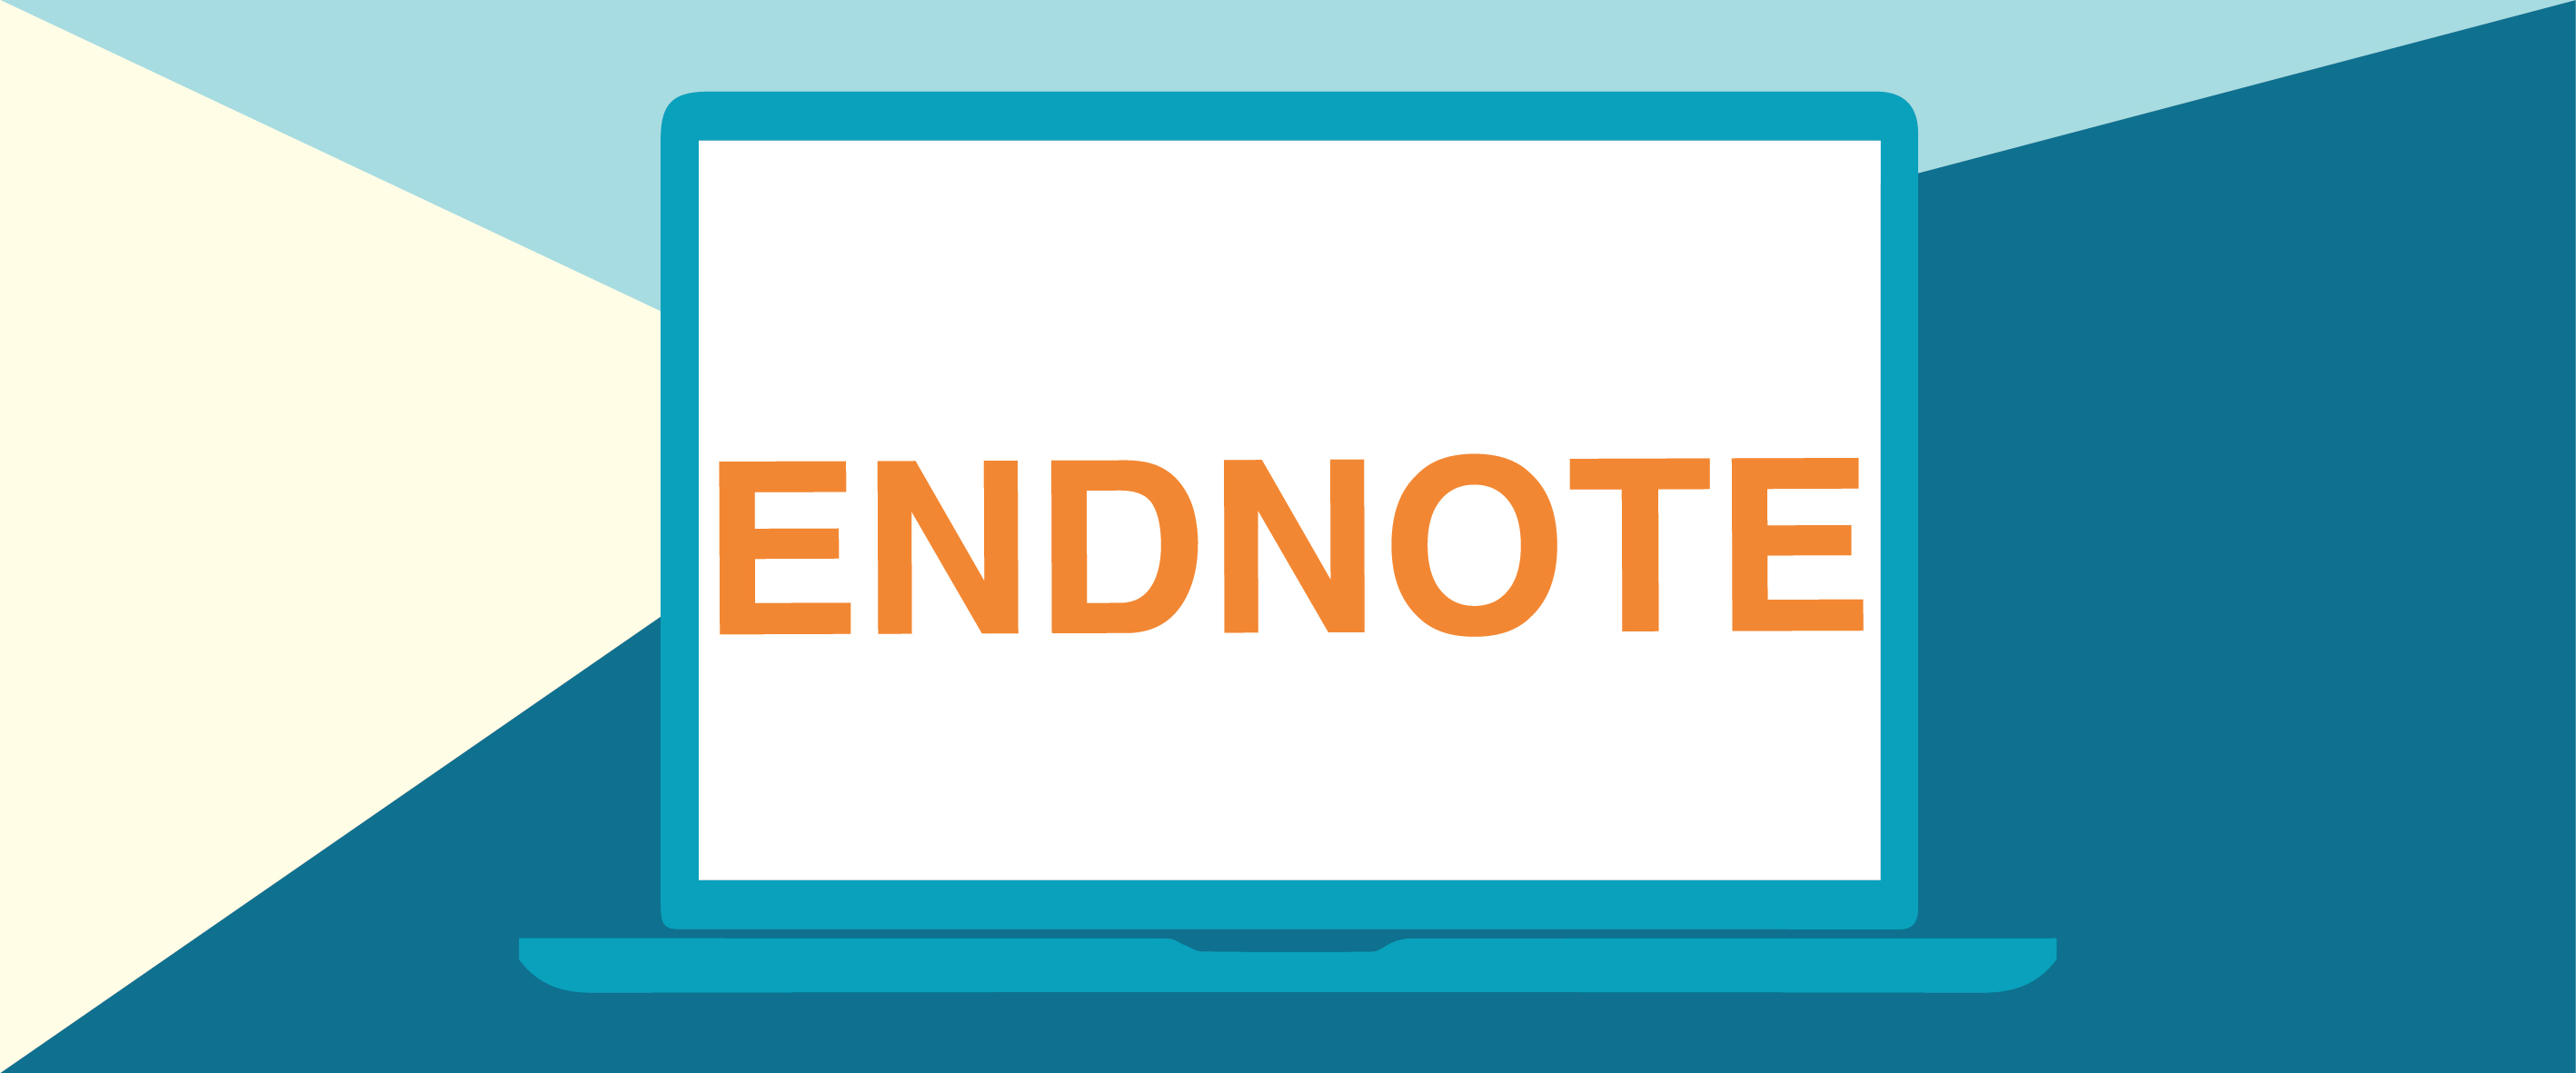 How to write endnotes in research